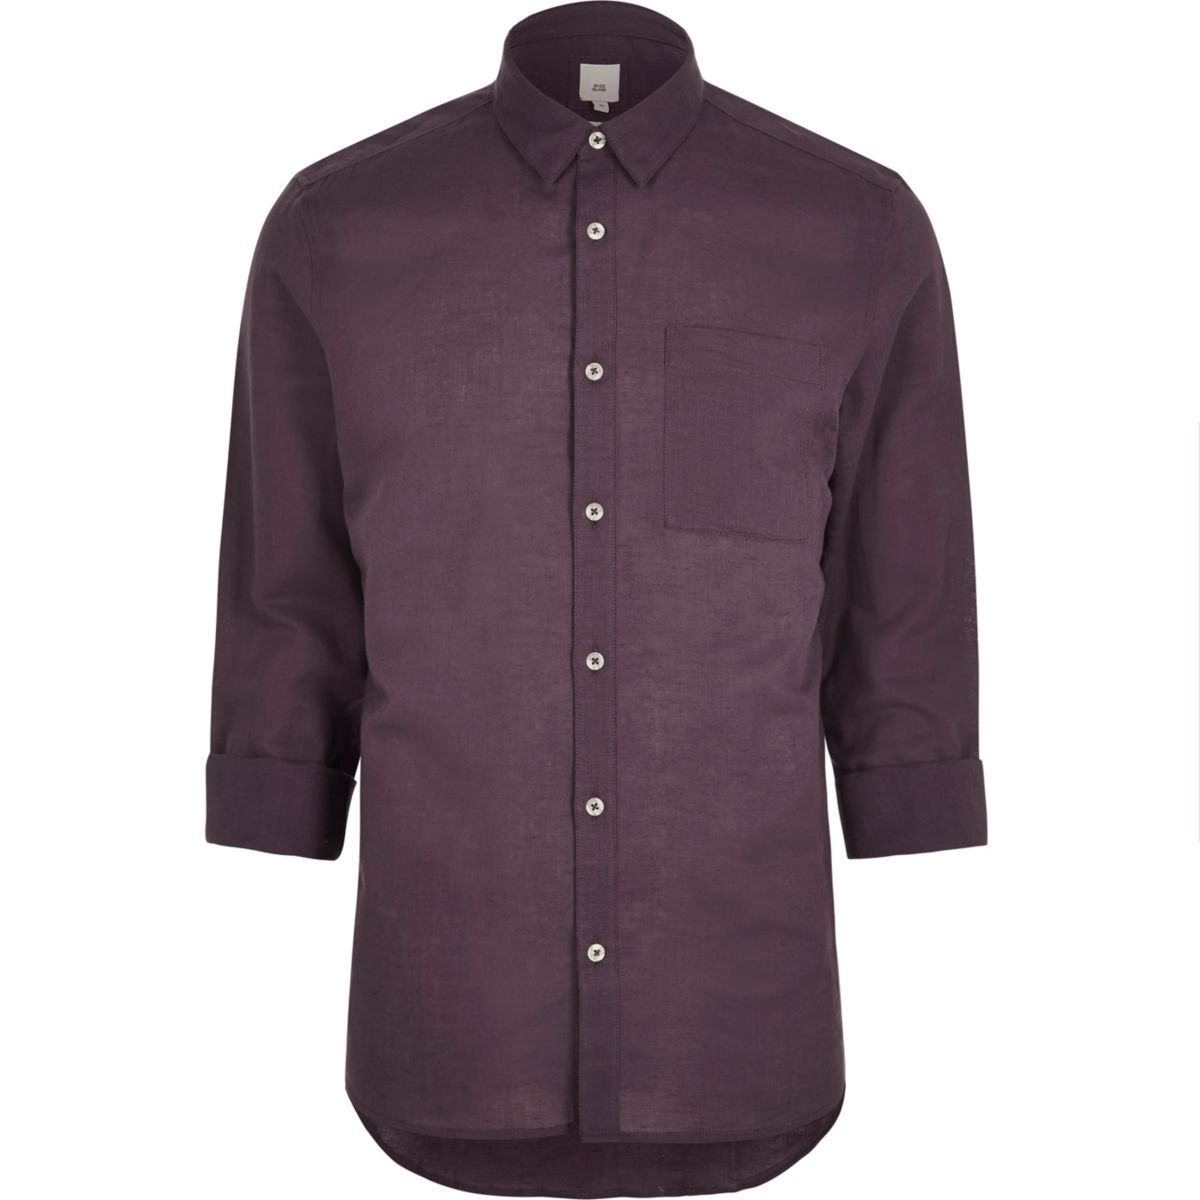 Purple linen blend long sleeve shirt